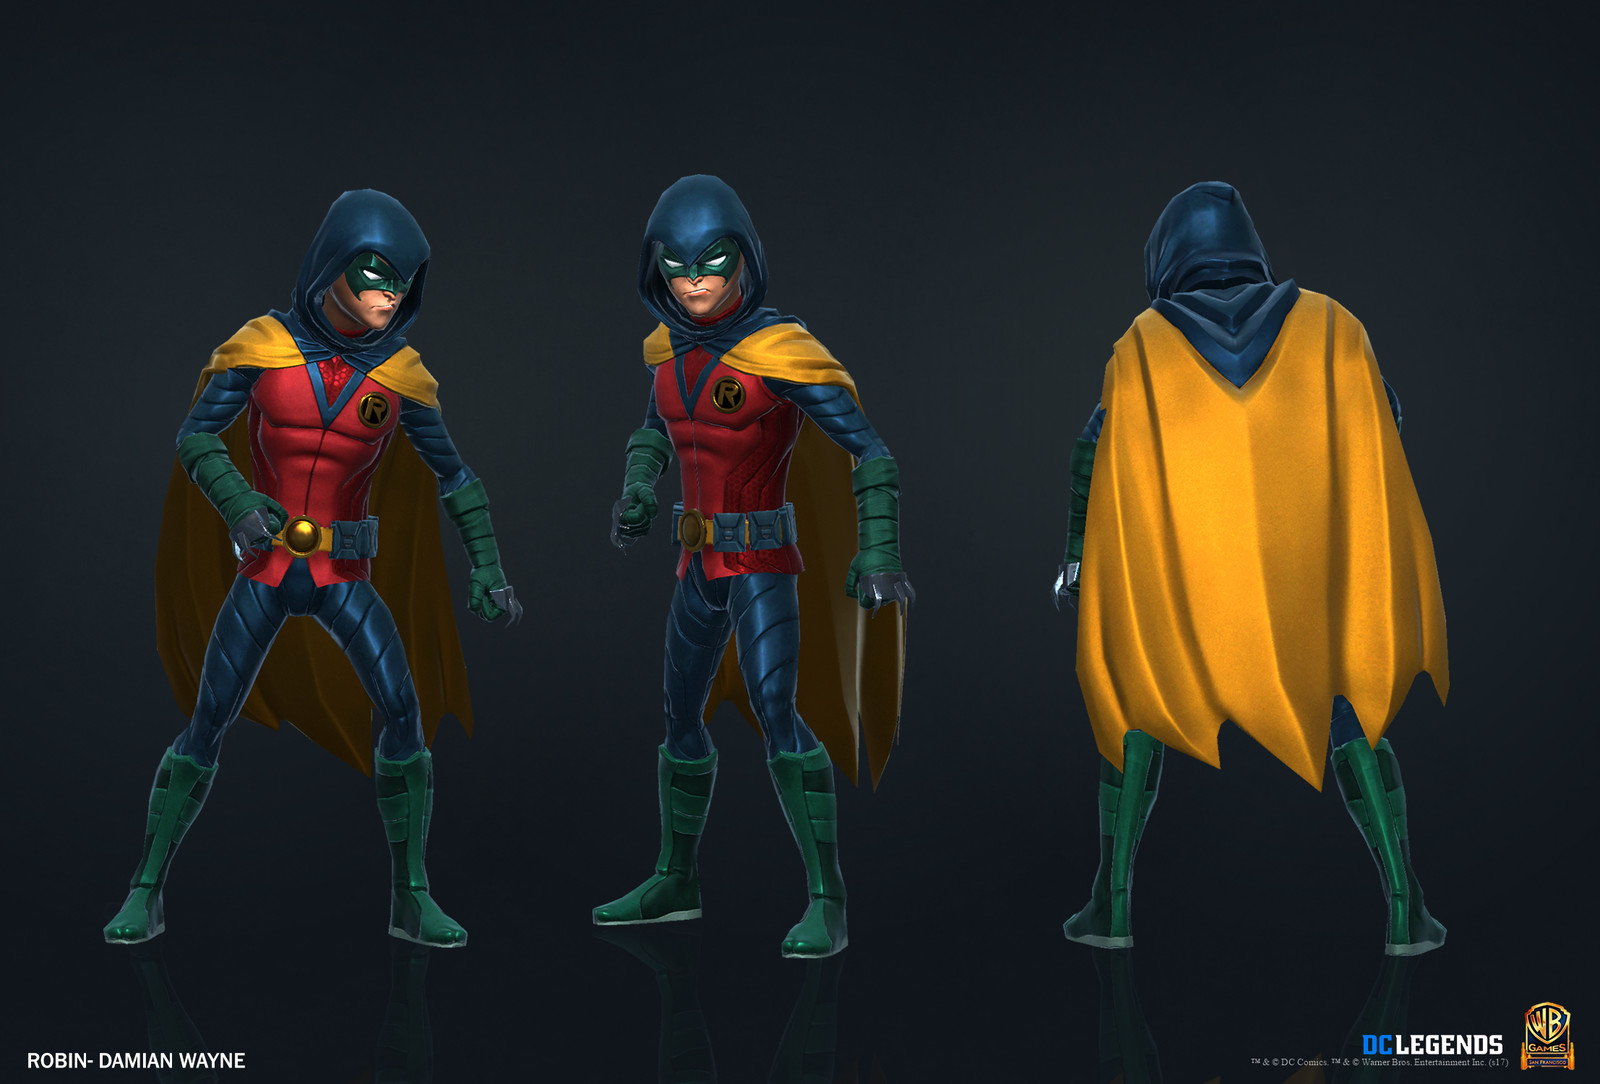 Robin Heroic.  High Poly, Low Poly and Textures/Material work done by me. Additional Texture/Material pass done by Rachelle Danielle.